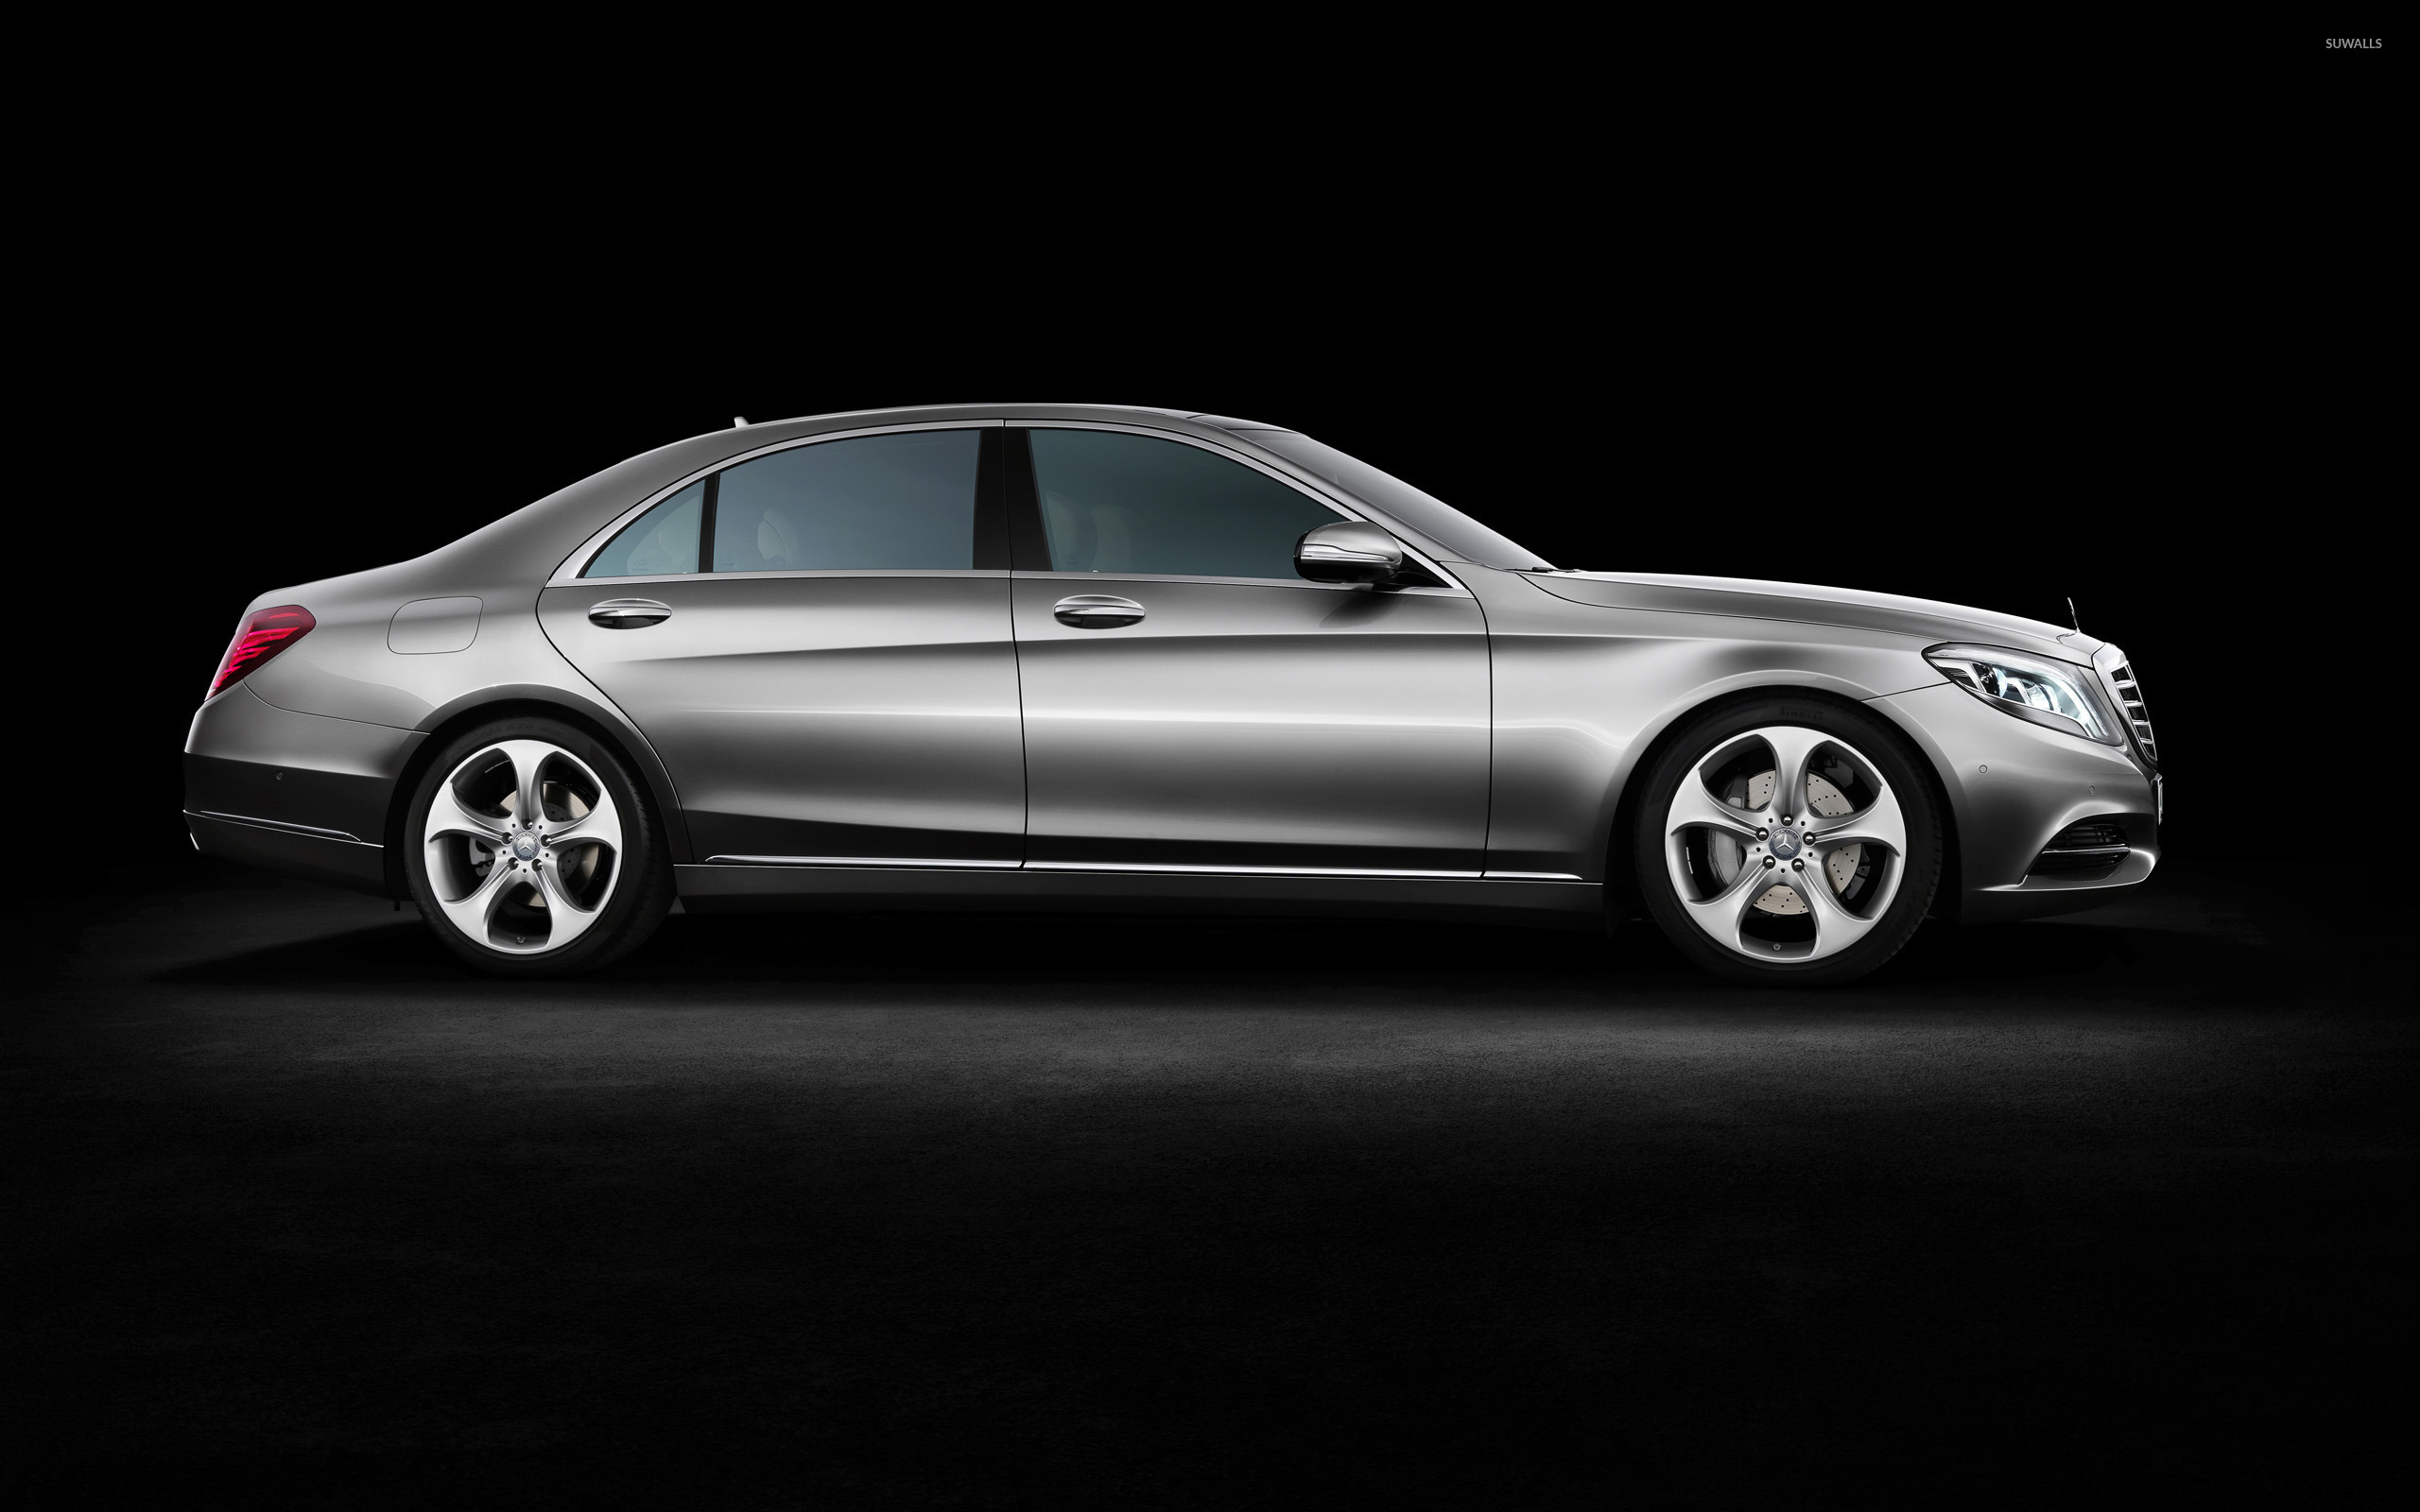 2013 mercedes benz s class 4 wallpaper car wallpapers for Mercedes benz 2013 s550